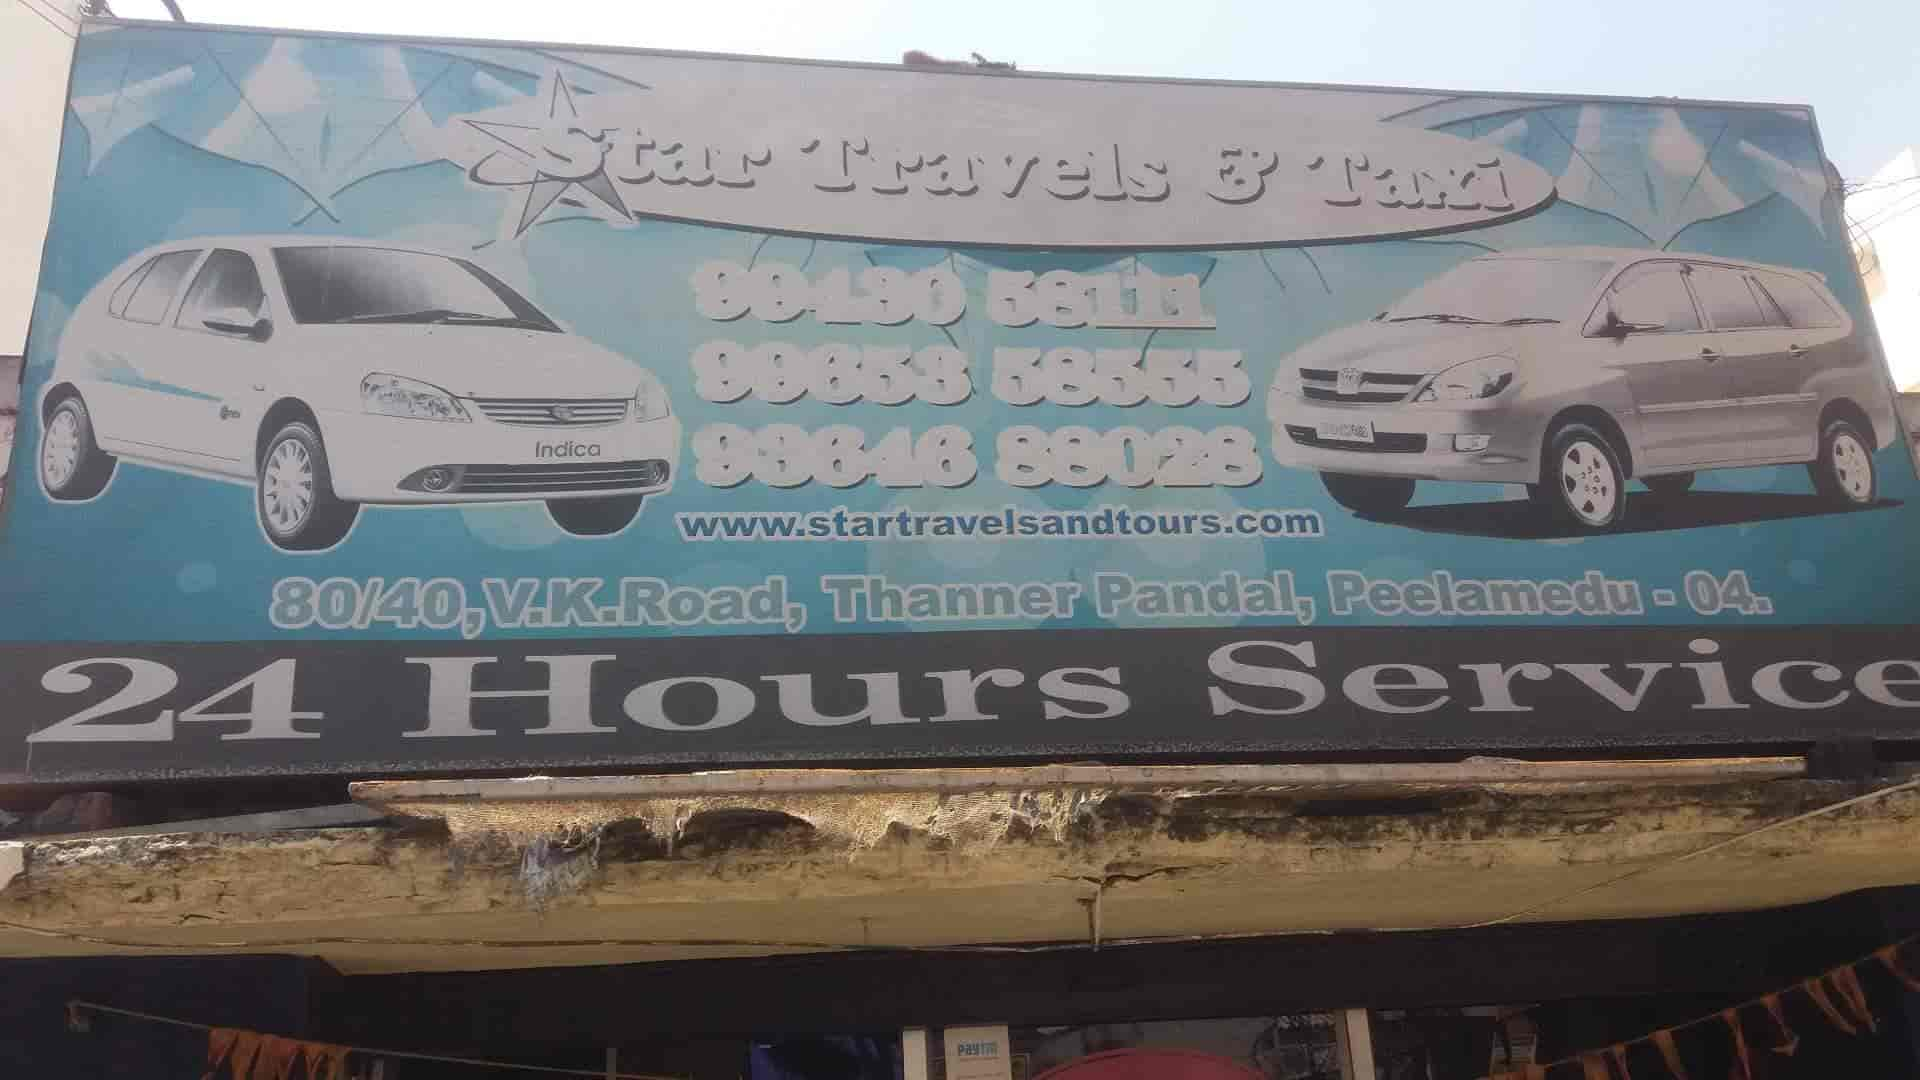 Star Travels Taxi Photos, Peelamedu, Coimbatore- Pictures & Images